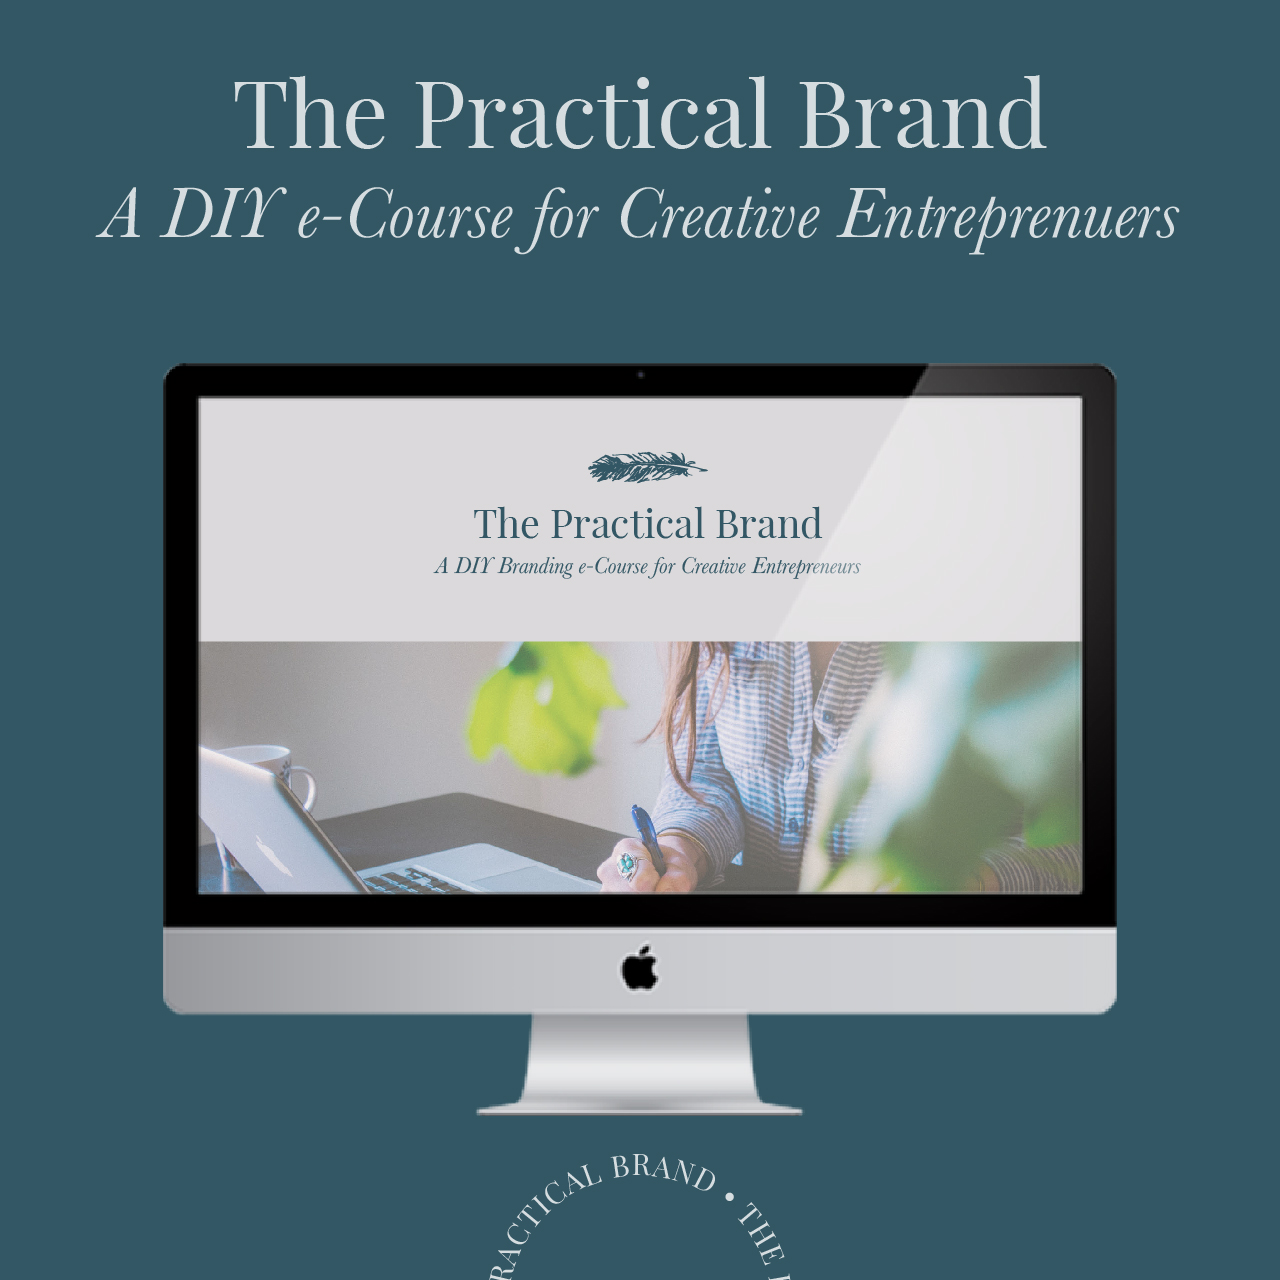 Here's a breakdown of everything that's covered in the course: - Your Brand Feeling, which covers:+ Core Values (includes Worksheet)+ Unique Offer (includes Worksheet)+ Dream Customers (includes Worksheet)+ Position Statement (includes Worksheet)Your Brand Vibe, which covers:+ Colors (includes Worksheet)+ Fonts (includes Worksheet)+ Imagery+ Logo